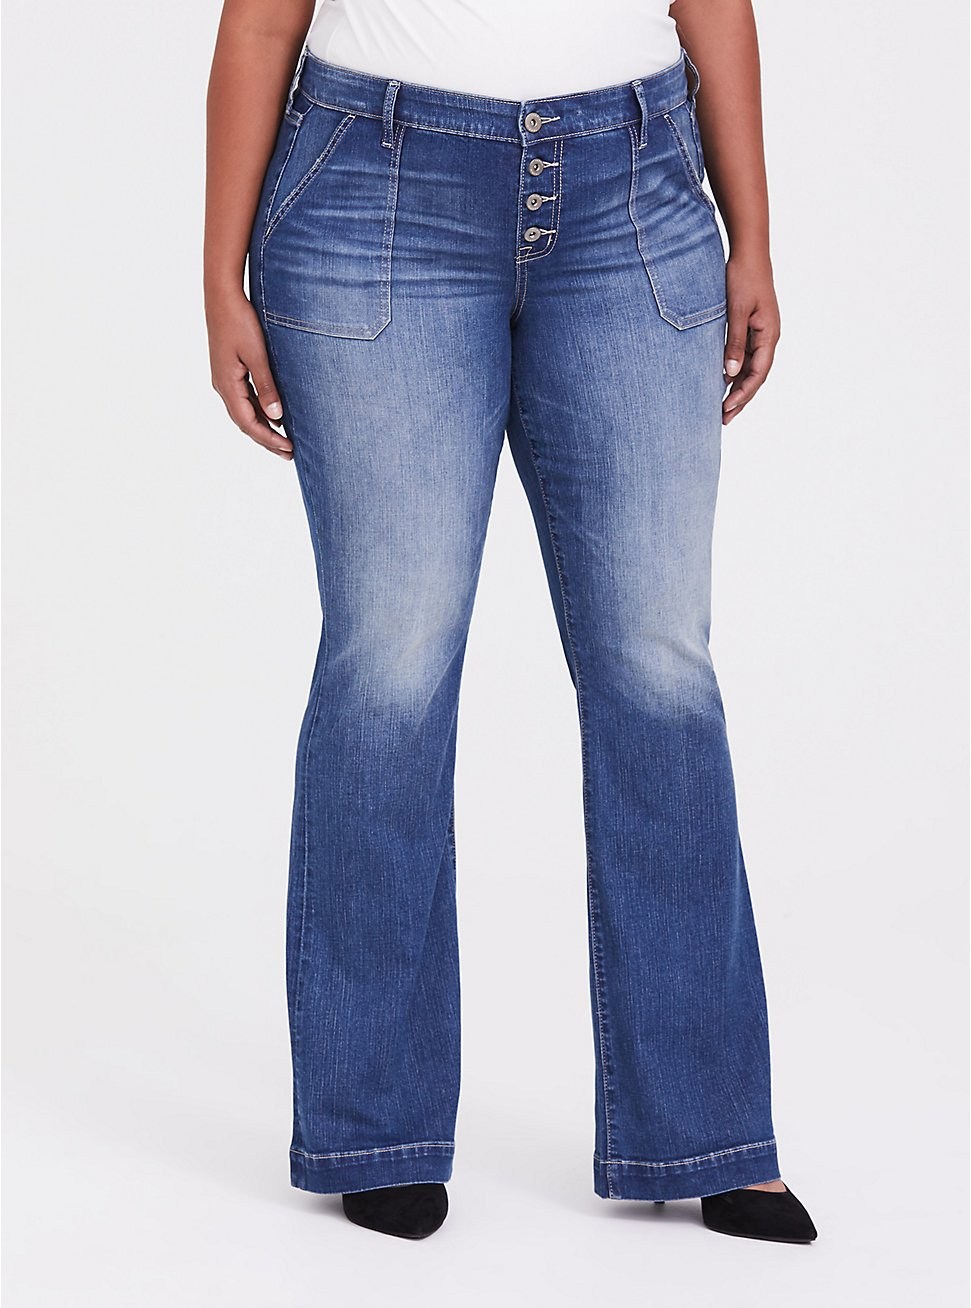 Flare Jean - Vintage Stretch Medium Wash, TWO IN THE BUSH, hi-res